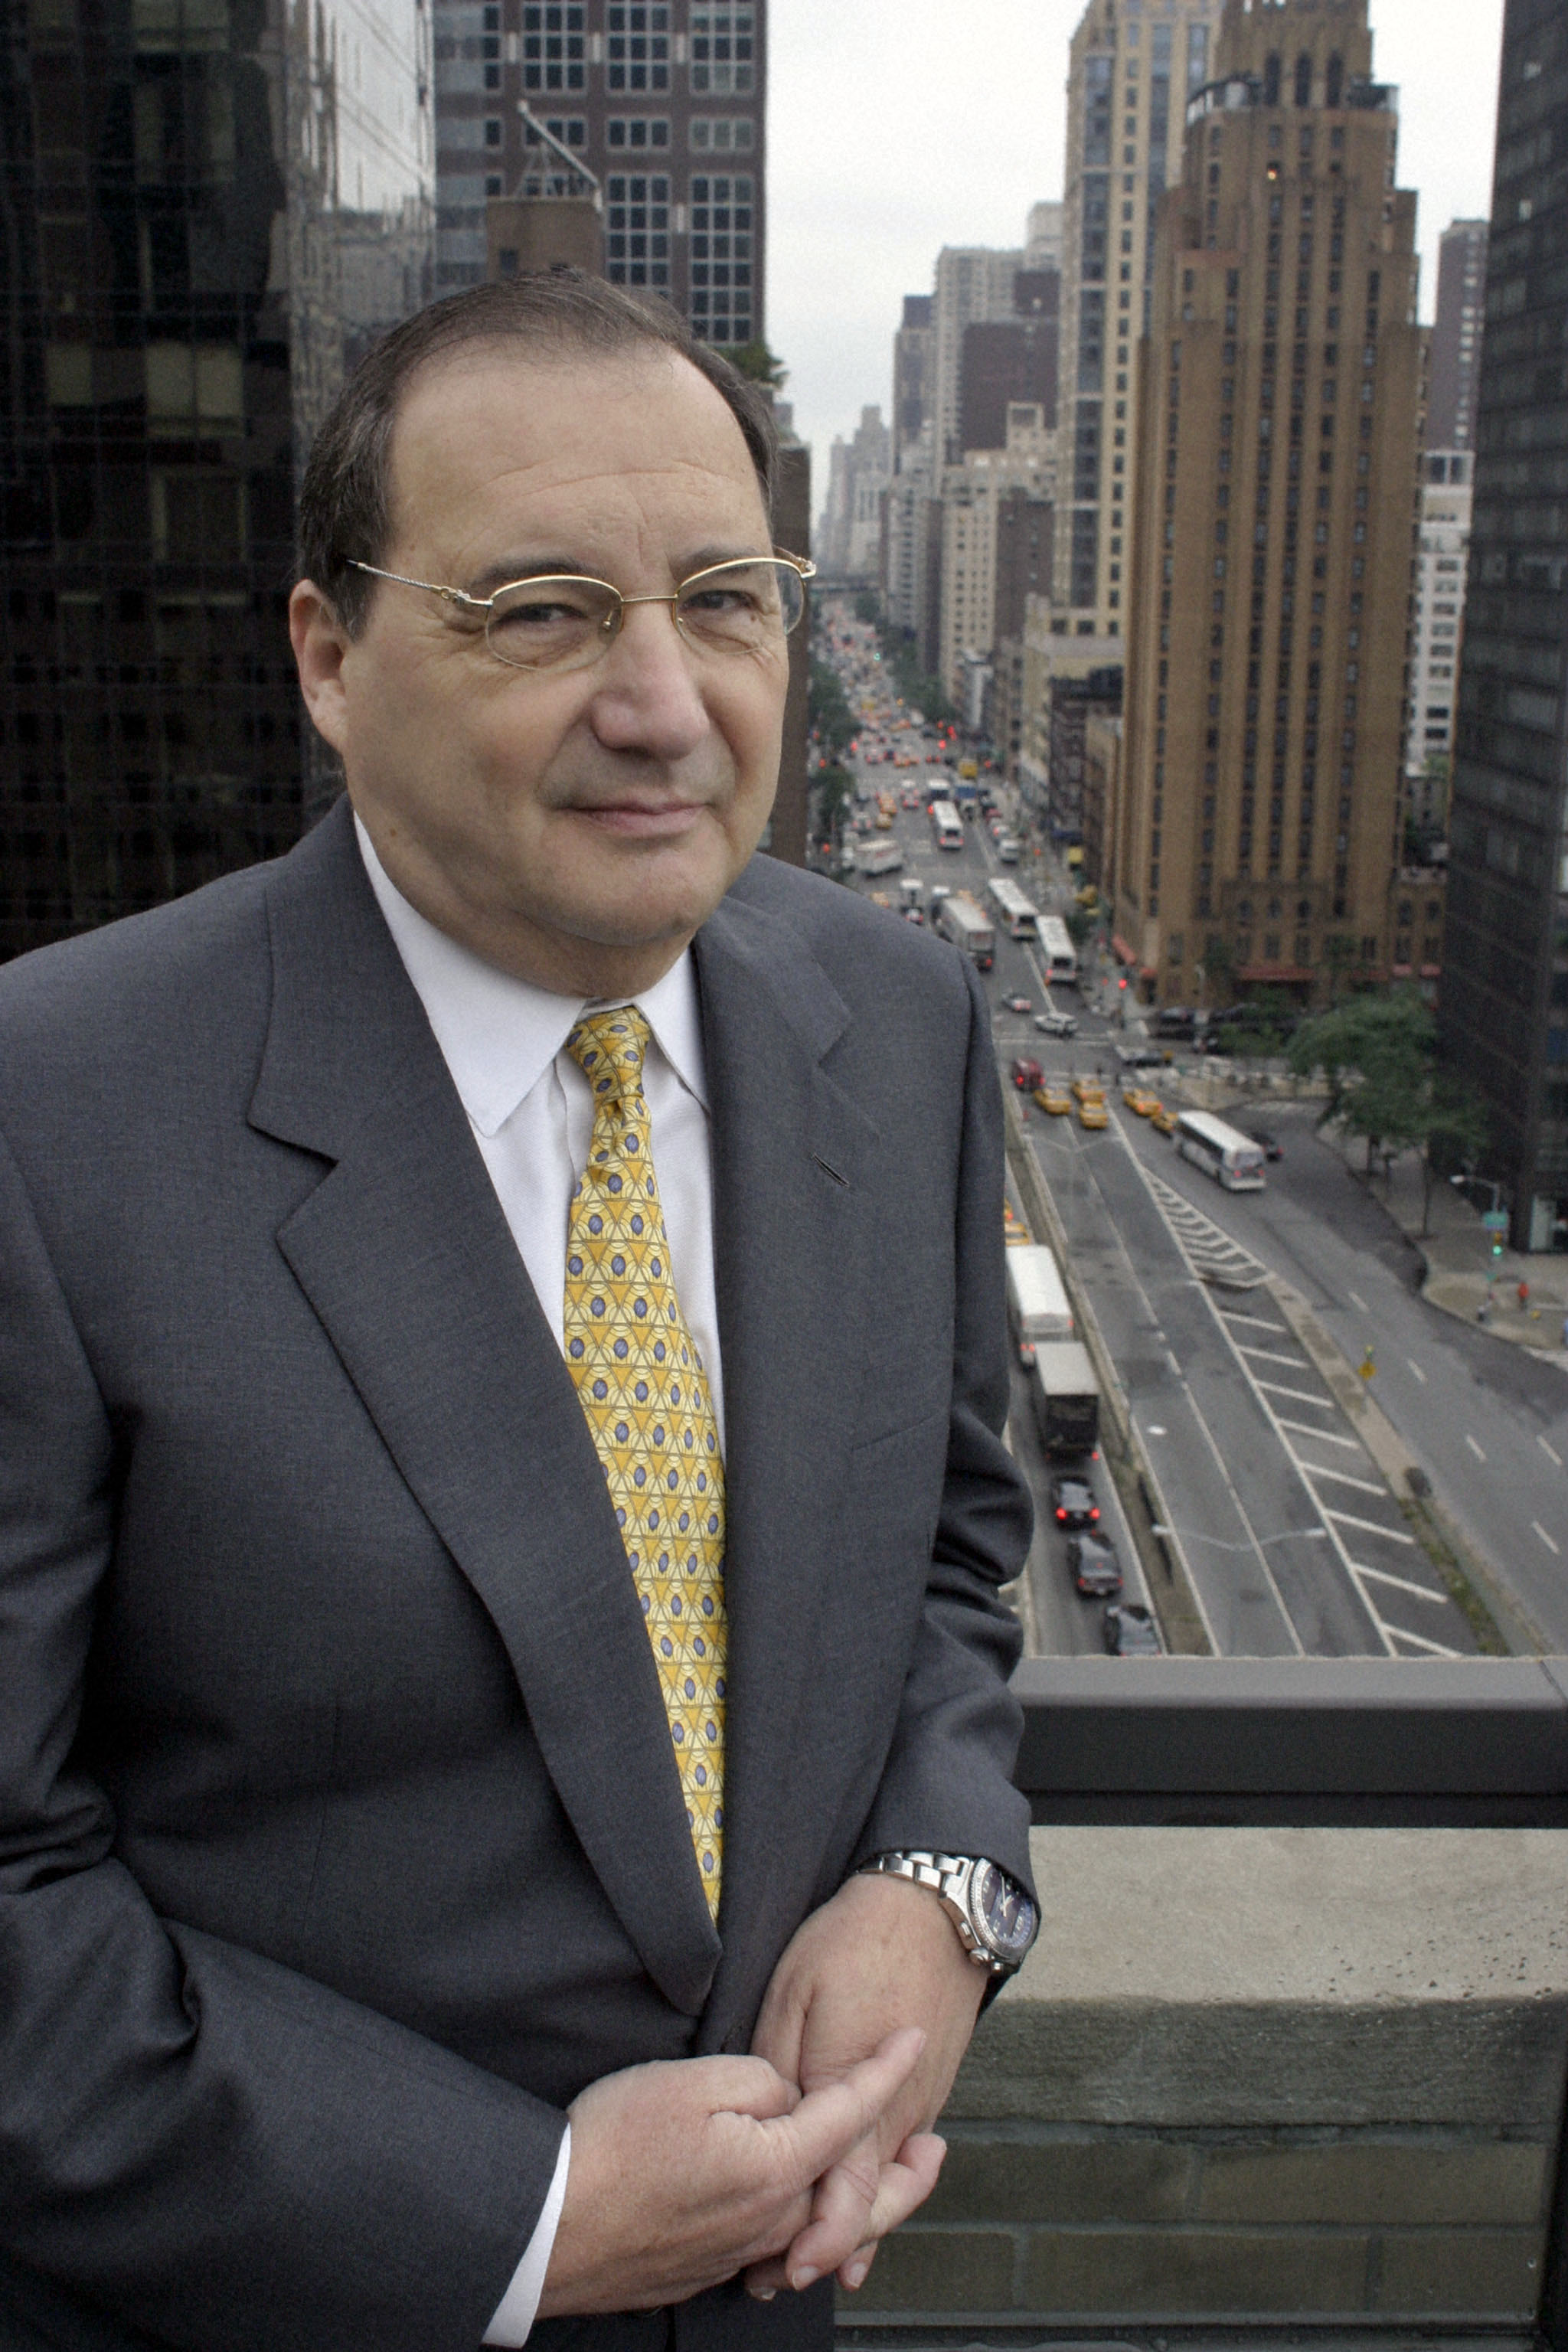 Abraham Foxman, National Director of Anti-Defamation League